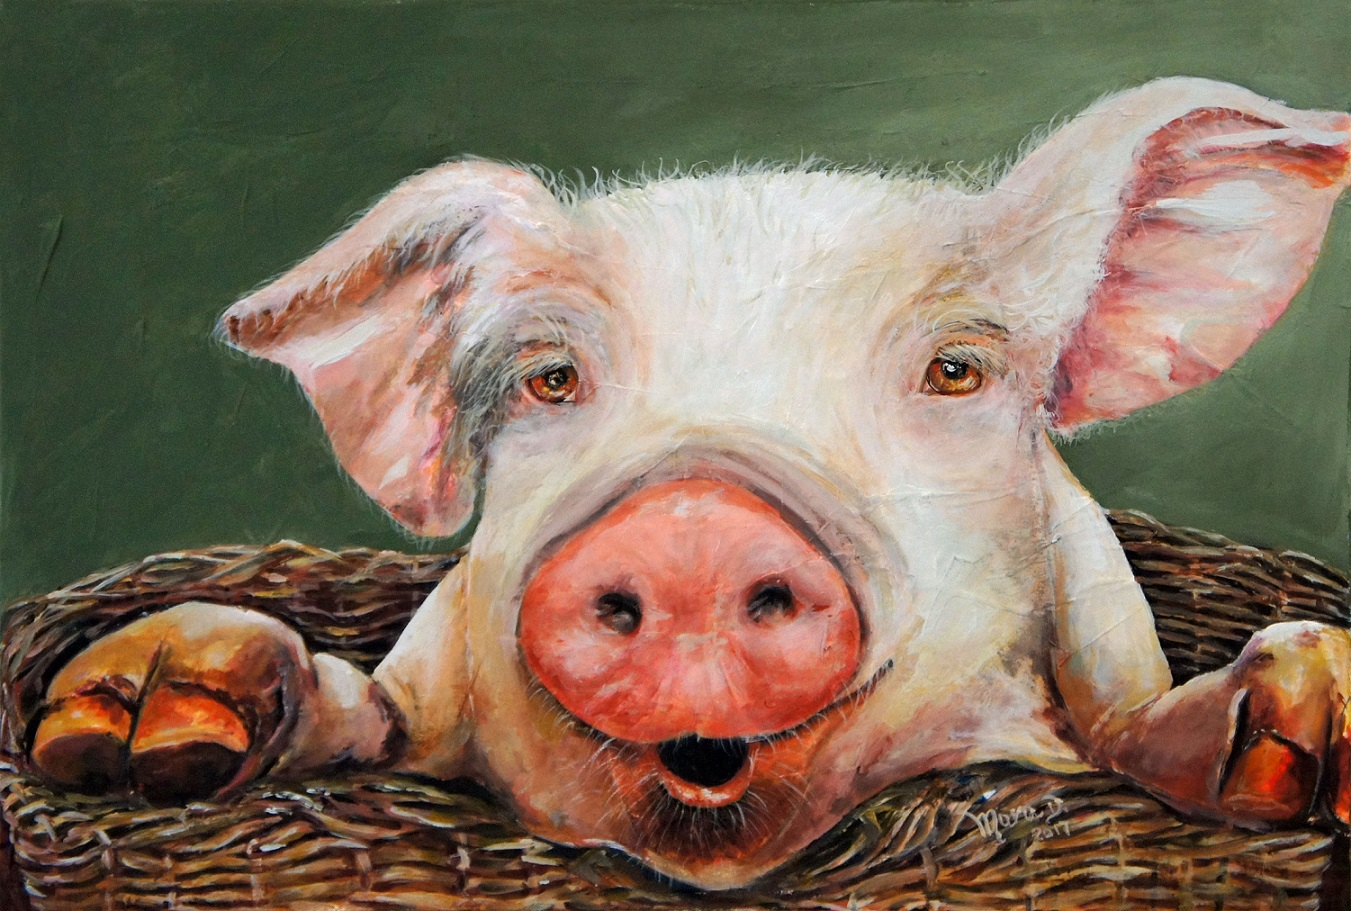 mara_painter_pig_in_a_basket.jpg